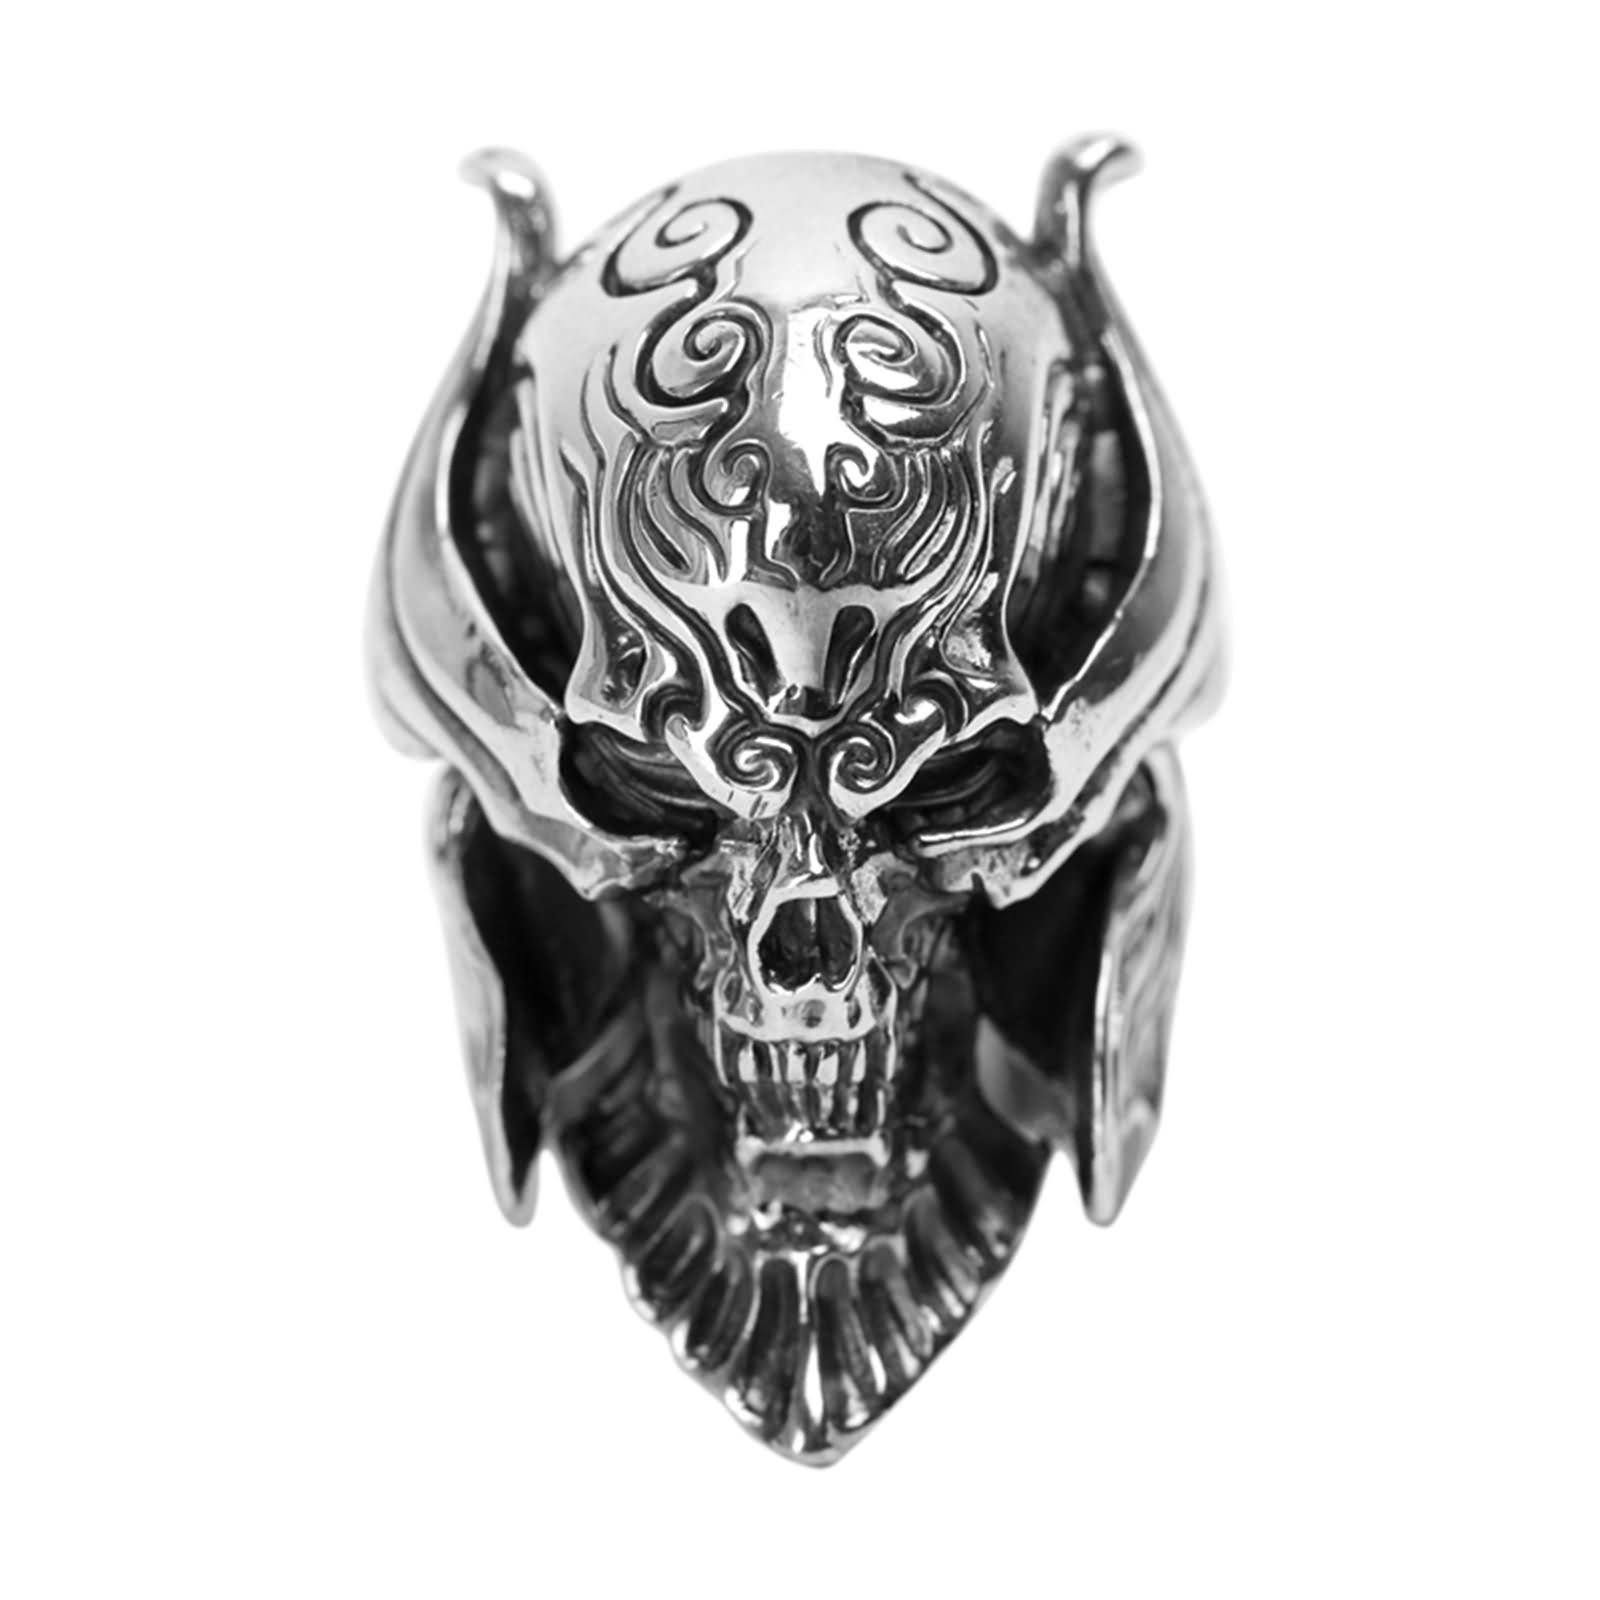 Bishilin Men's Rings Silver Plated Skull Friendship Rings Silver Size 12.5